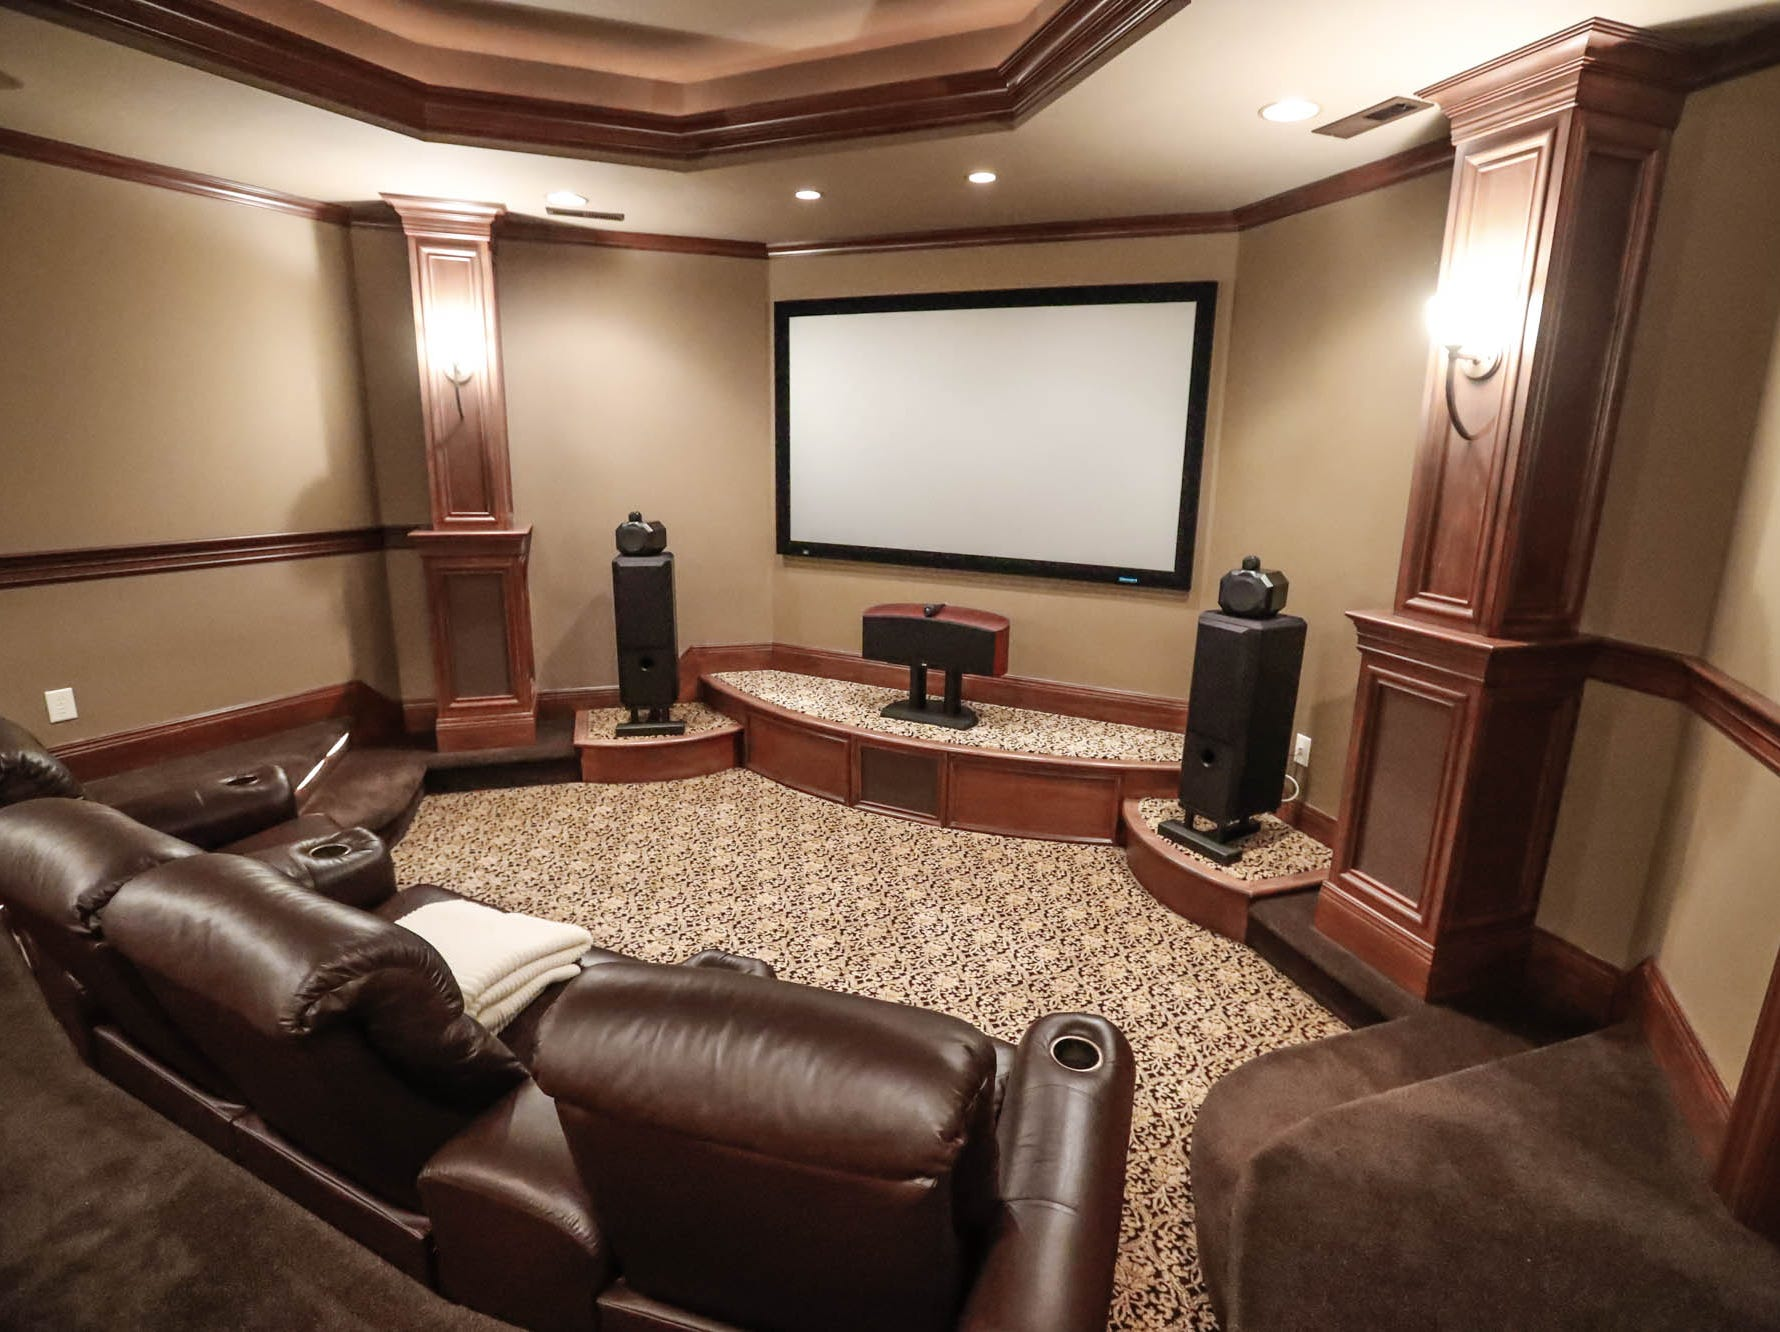 The basement of a traditional $2m home up for sale in Bargersville Ind. features a home theatre room on Wednesday, Jan. 9, 2019. The house sits on 8.1 acres.